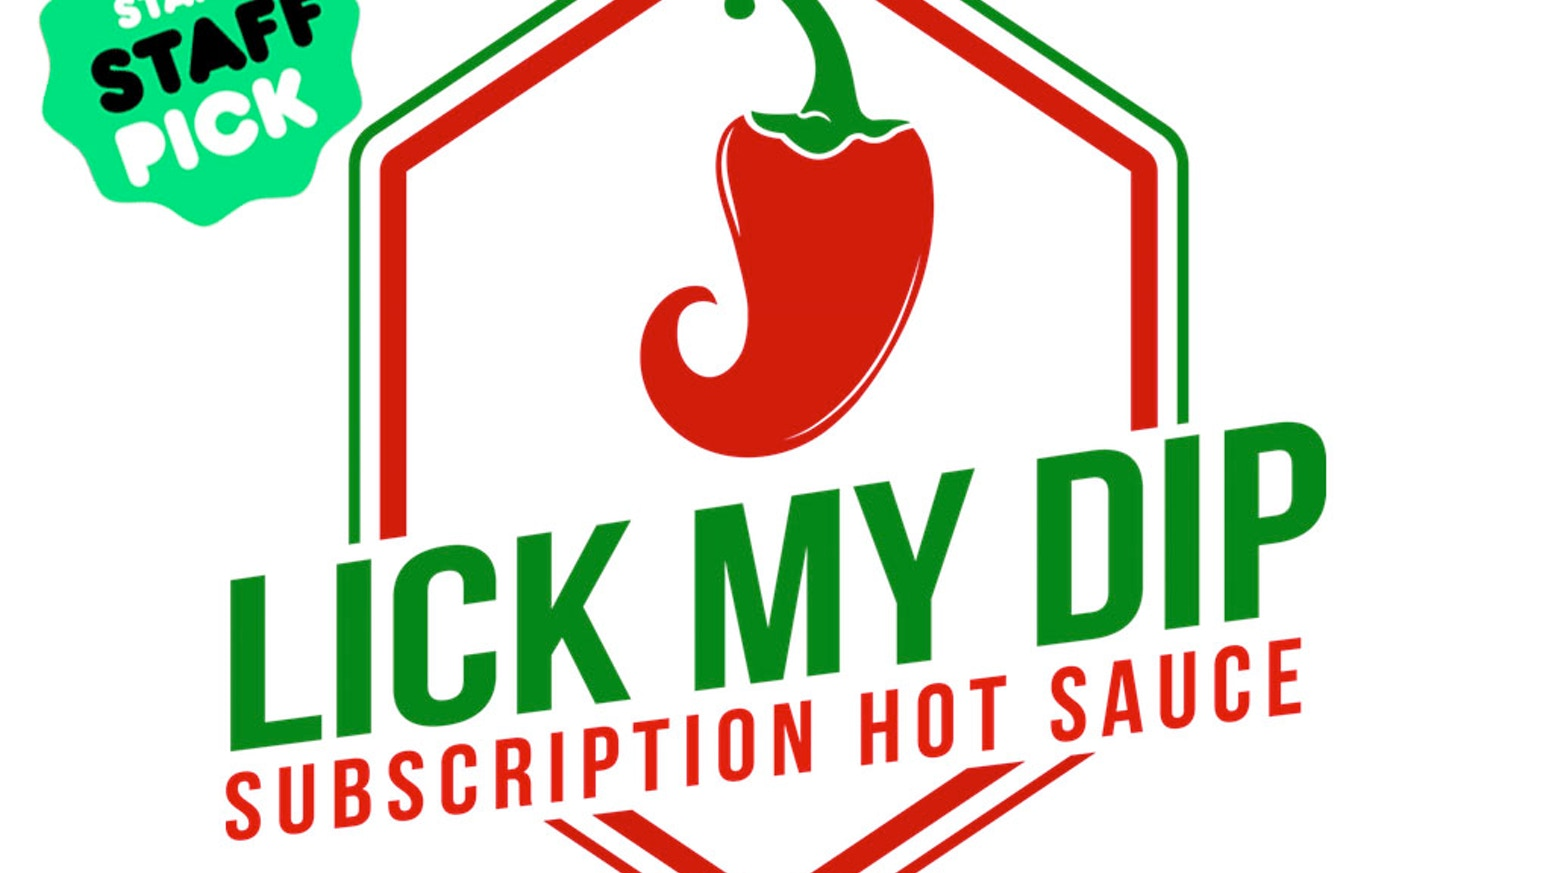 Tired of Tabasco? Lick My Dip is the subscription hot sauce service championing small UK manufacturers and diversifying your dinner!